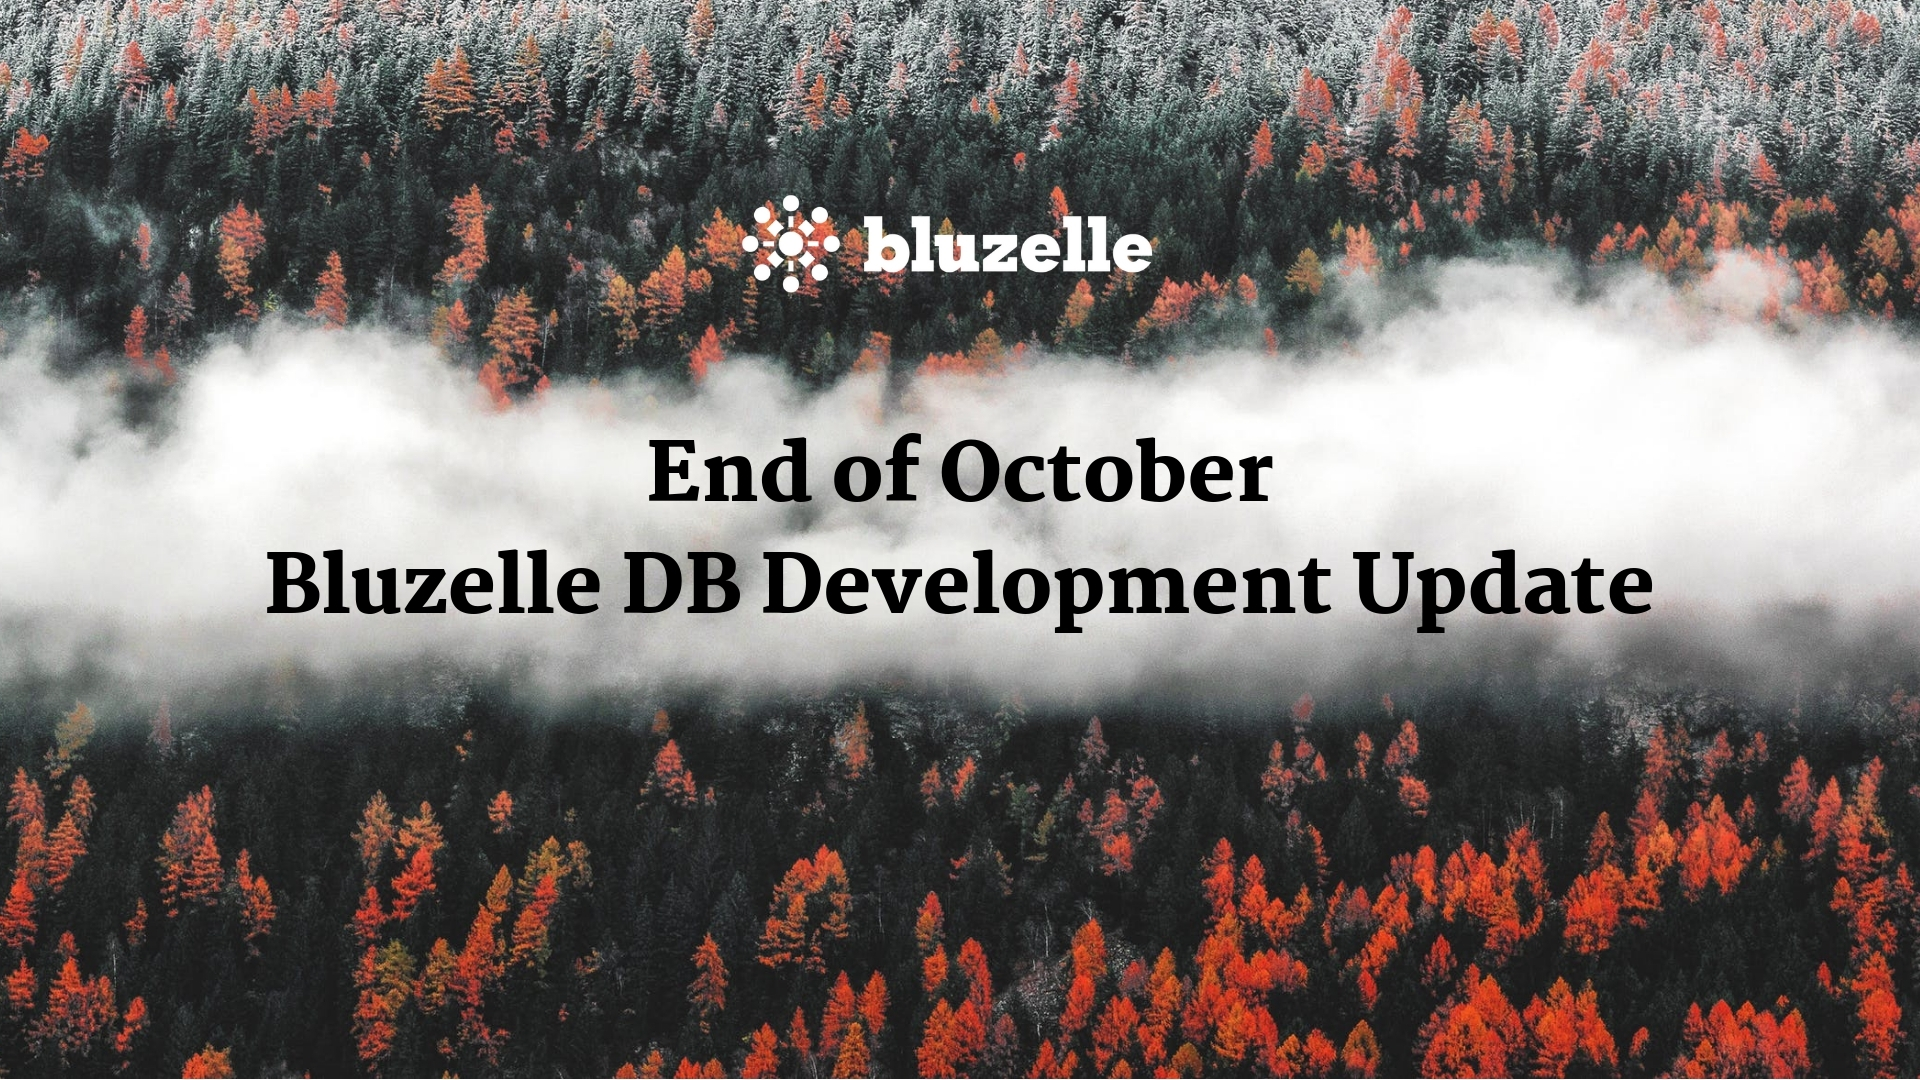 End of October Bluzelle DB Development Update